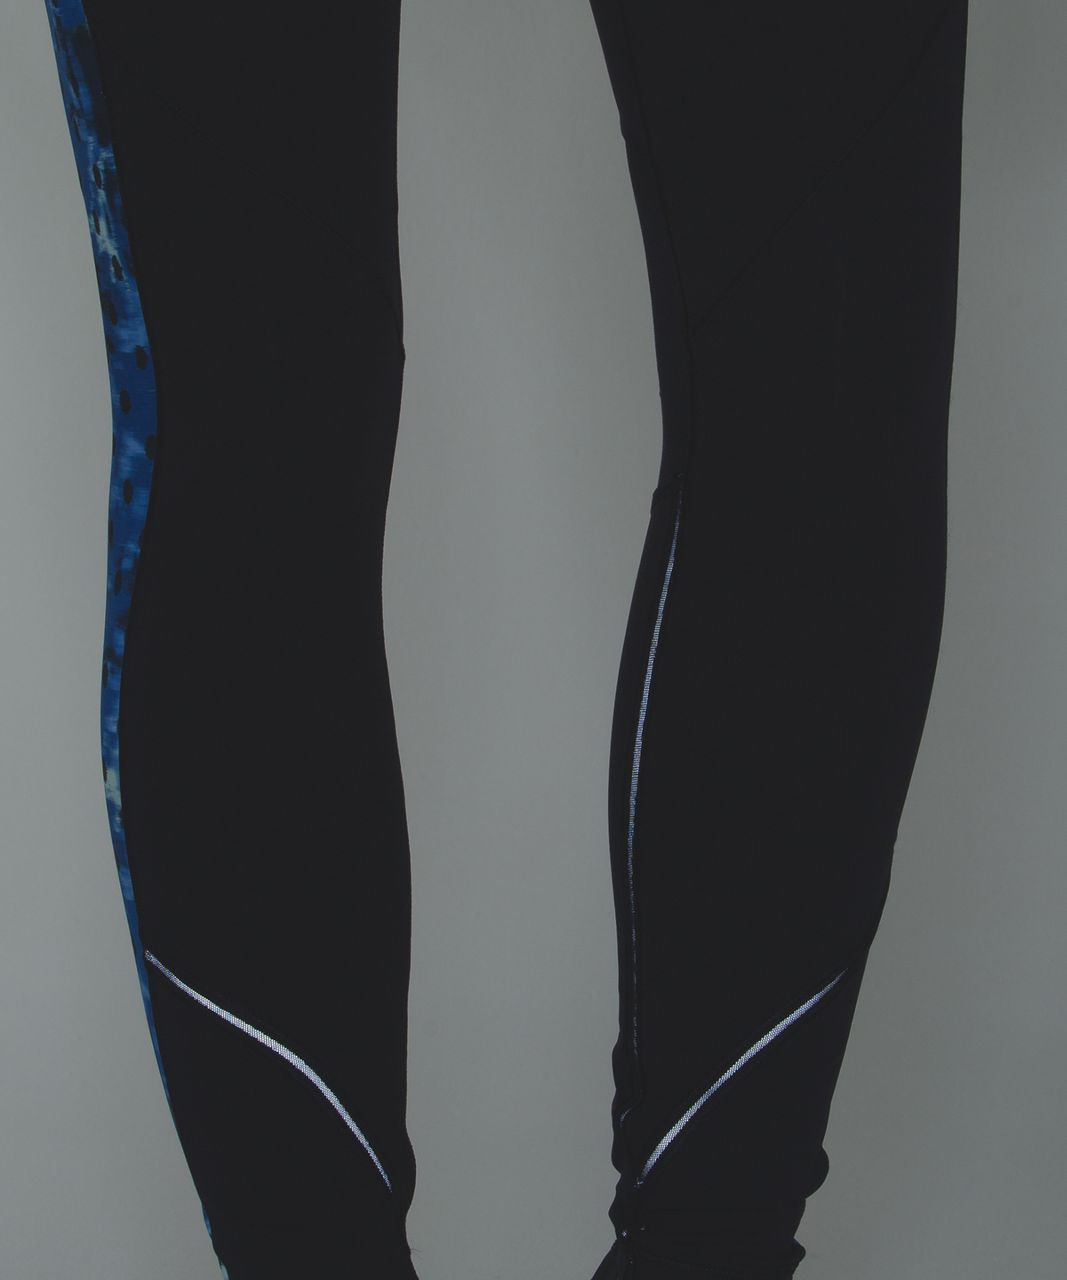 Lululemon Rain-On Train-On Tight - Naval Blue / Windy Blooms Saphire Blue Multi / Sapphire Blue